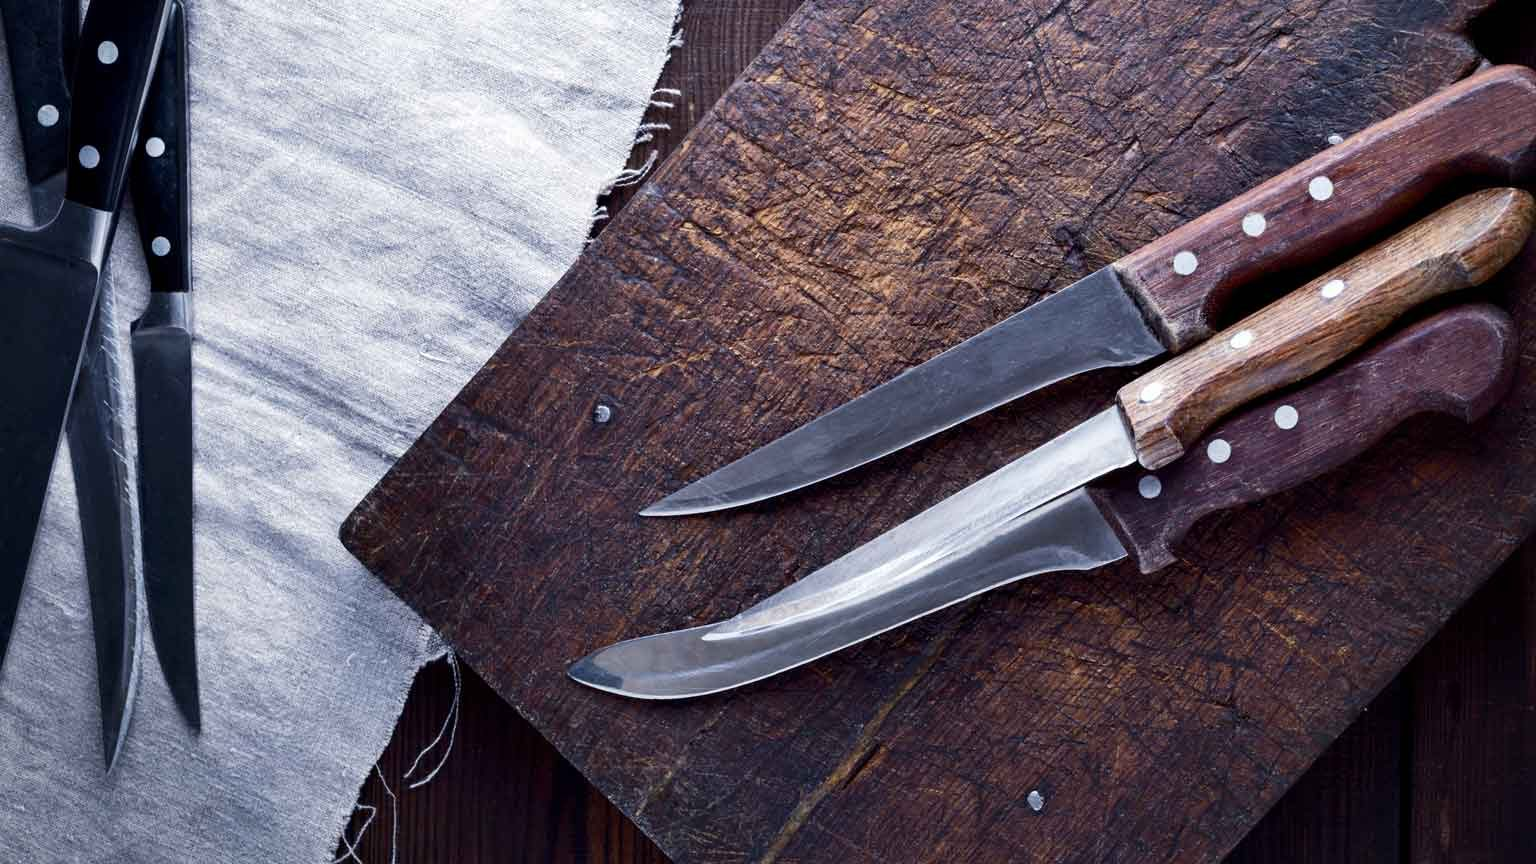 Kitchen Knives And Cutting Board On Table